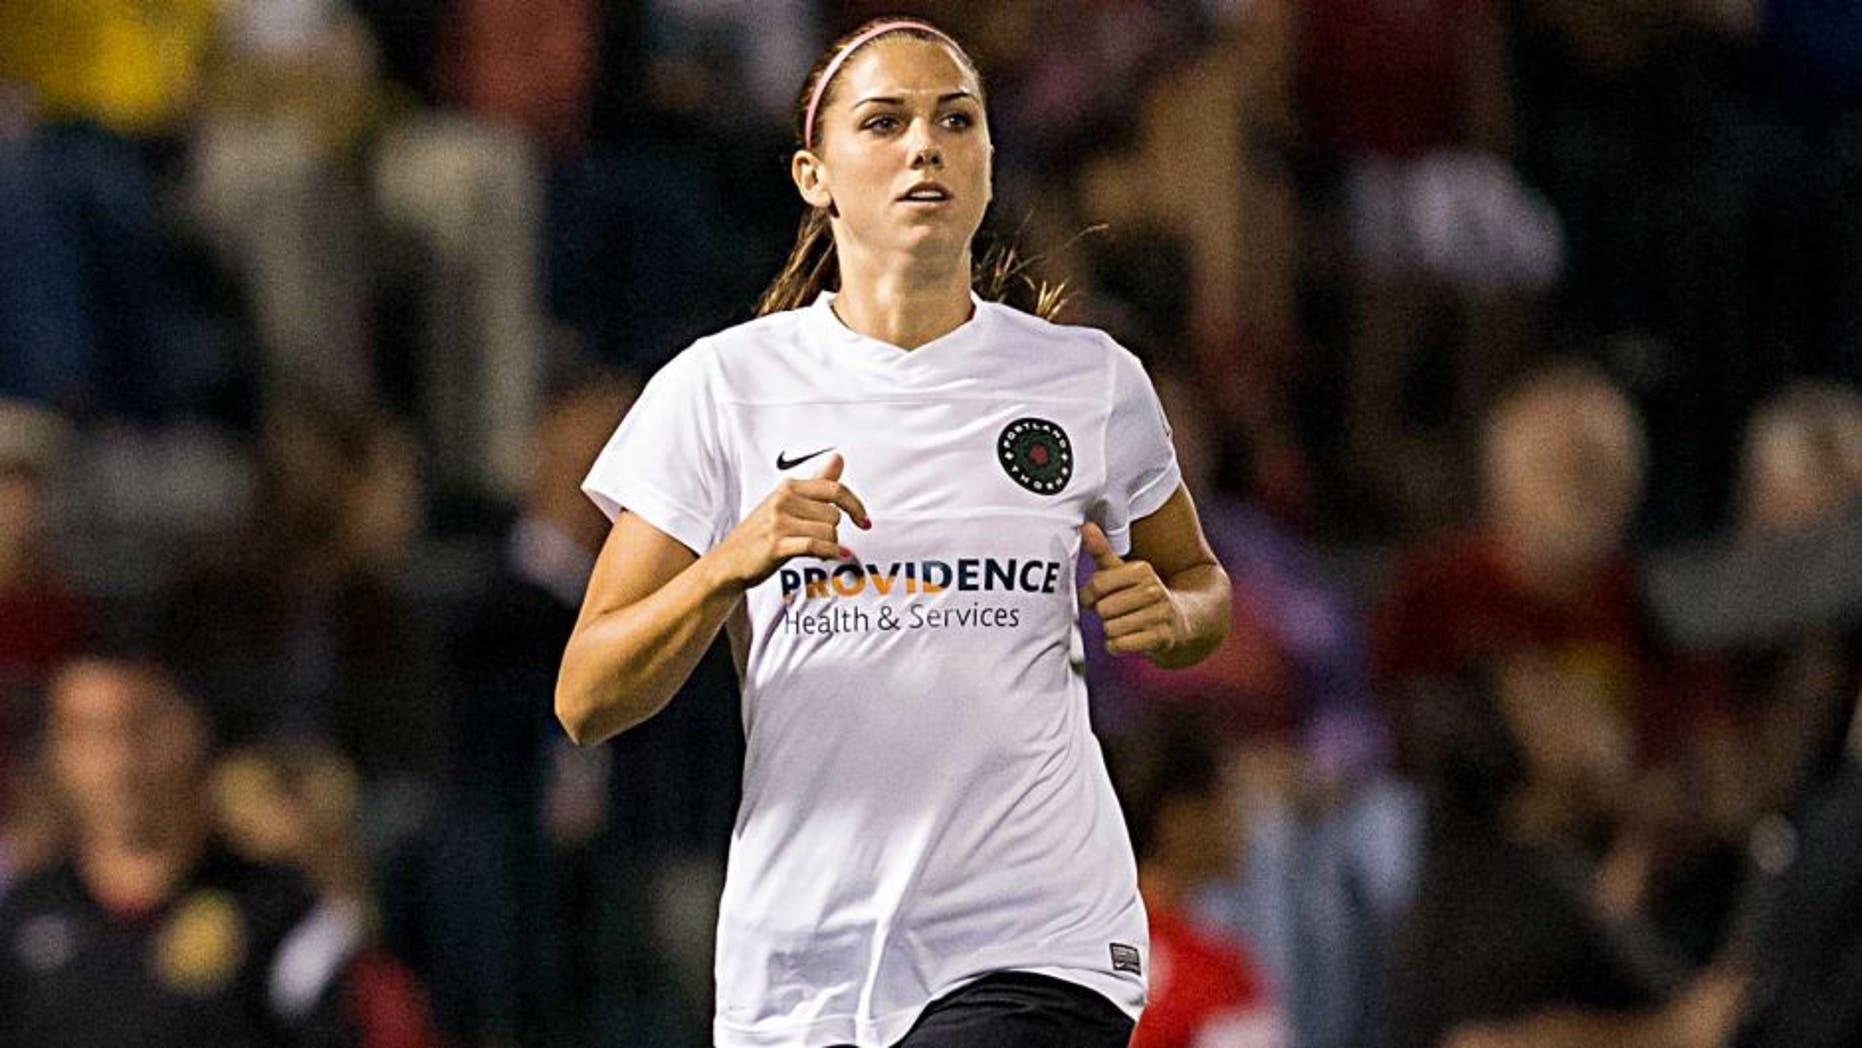 ROCHESTER, NY - AUGUST 31: Alex Morgan #13 of Portland Thorns FC enters the game against Western New York Flash during the second period despite a left knee injury in the National Women's Soccer League Championship at Sahlen's Stadium August 31, 2013 in Rochester, New York. (Photo by Brett Carlsen/Getty Images)